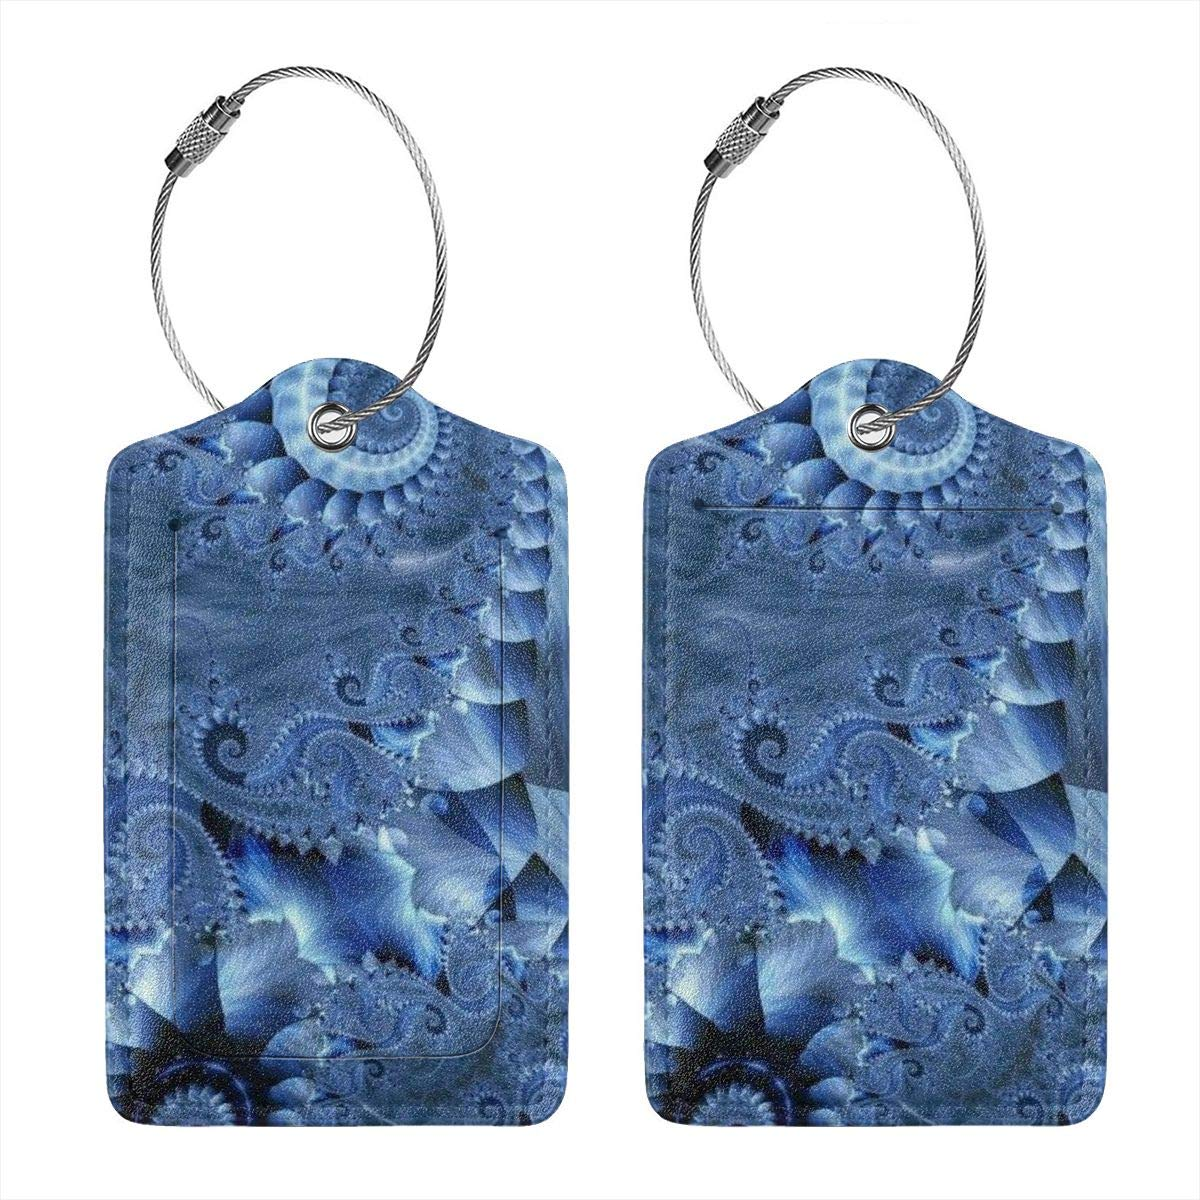 Beautiful Fractal Octopus Luggage Tag Label Travel Bag Label With Privacy Cover Luggage Tag Leather Personalized Suitcase Tag Travel Accessories